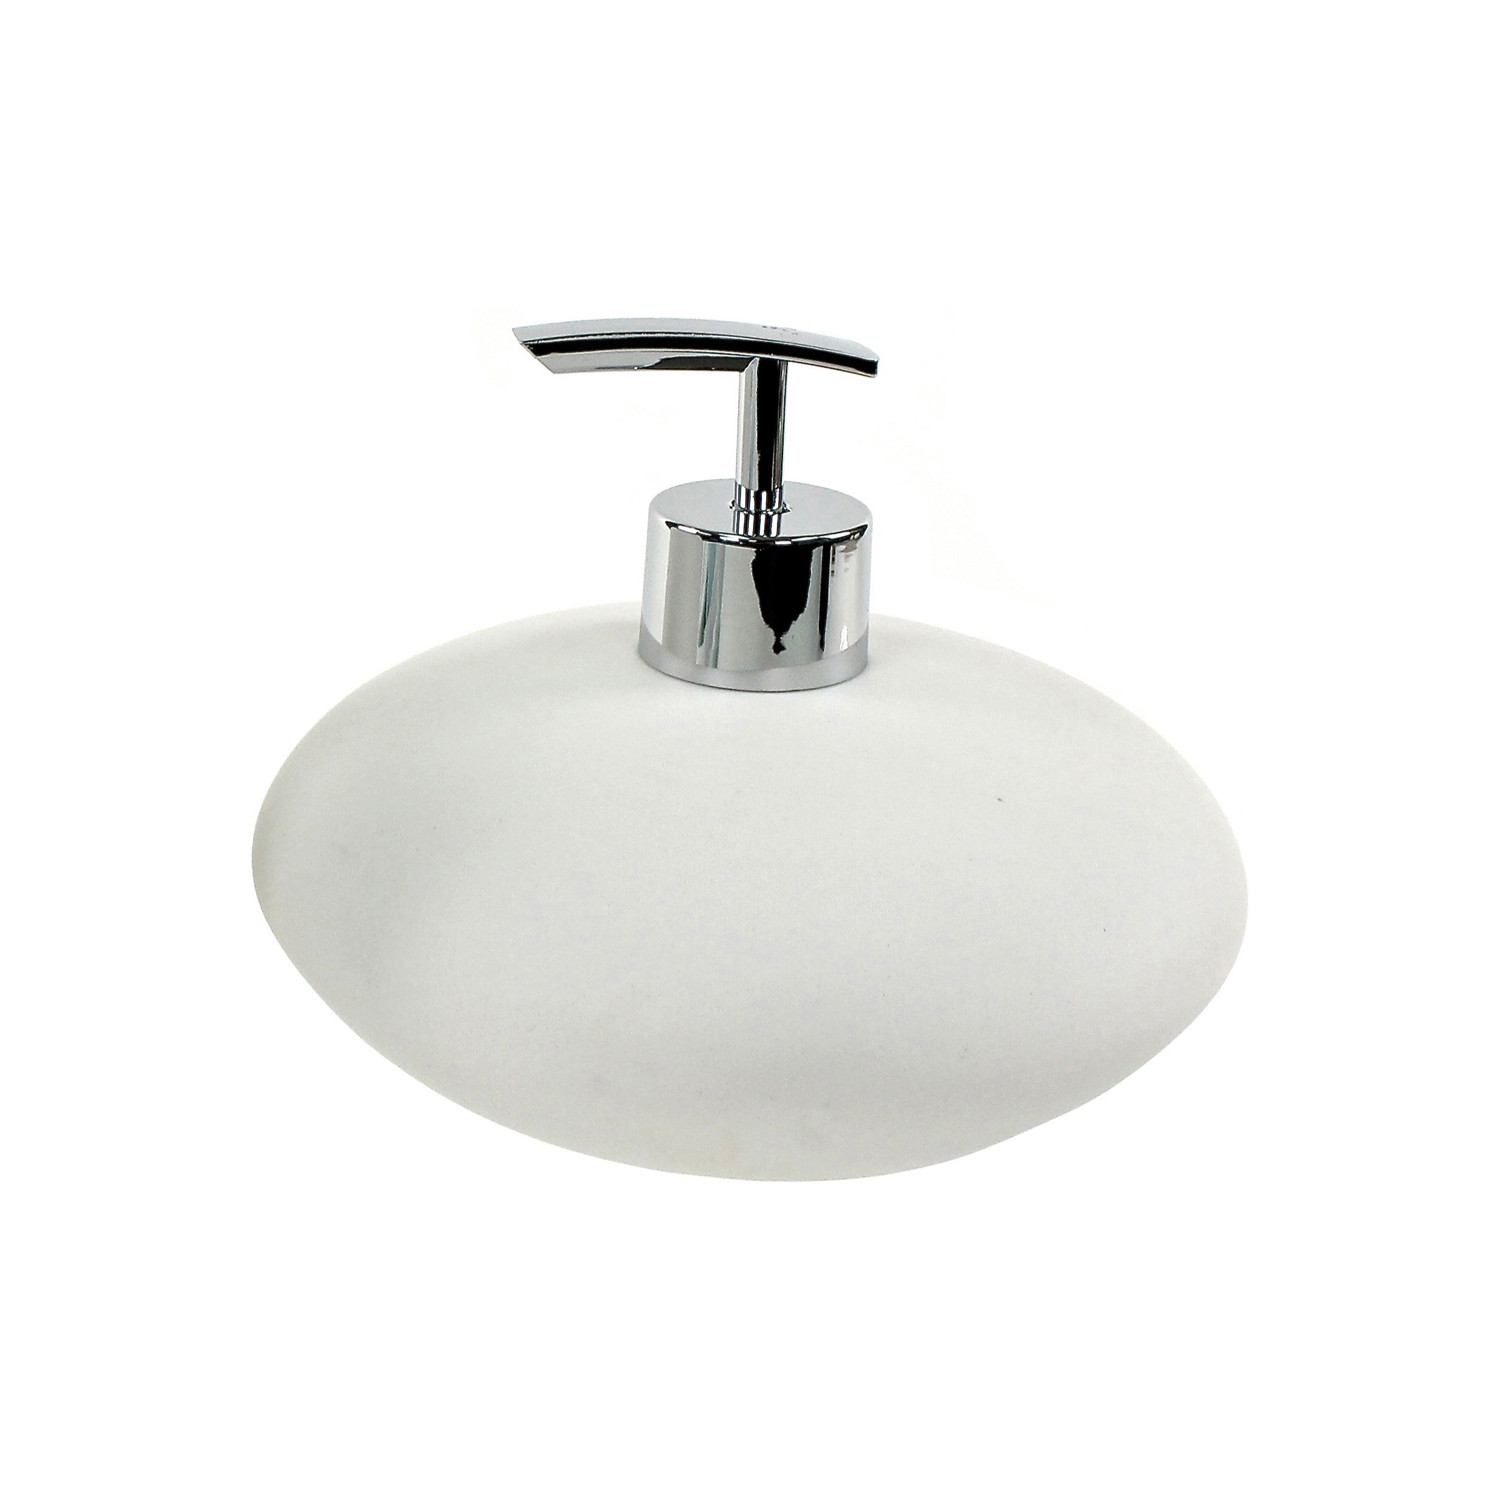 modern bathroom soap dispenser  my web value - short soap dispenser  white